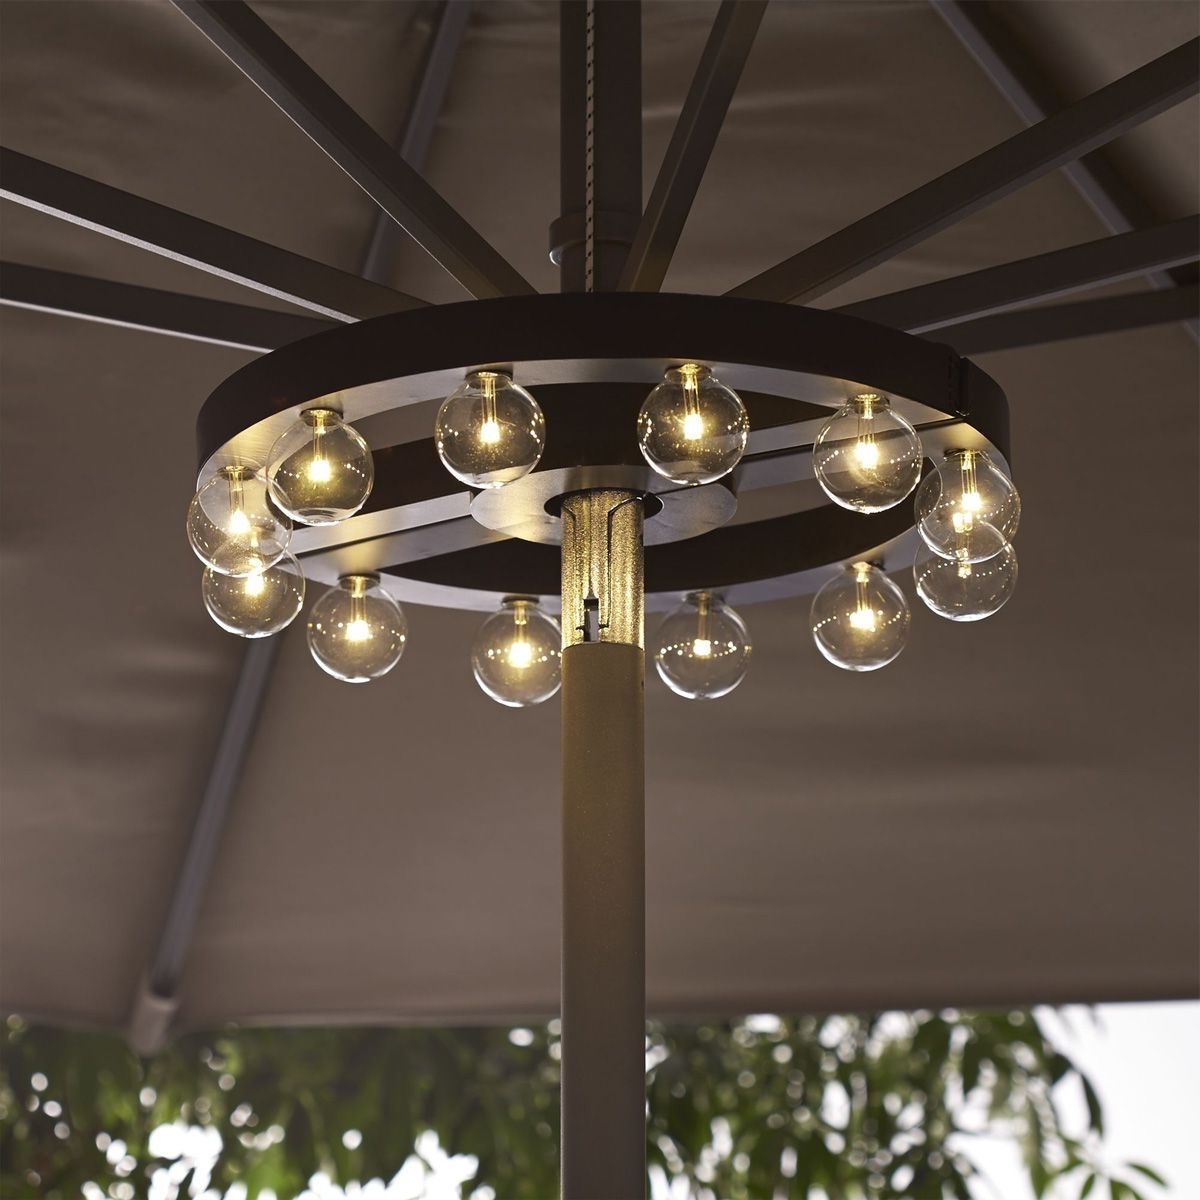 Preferred Solar Lights For Patio Umbrellas • Patio Ideas With Solar Patio Umbrellas (View 12 of 20)